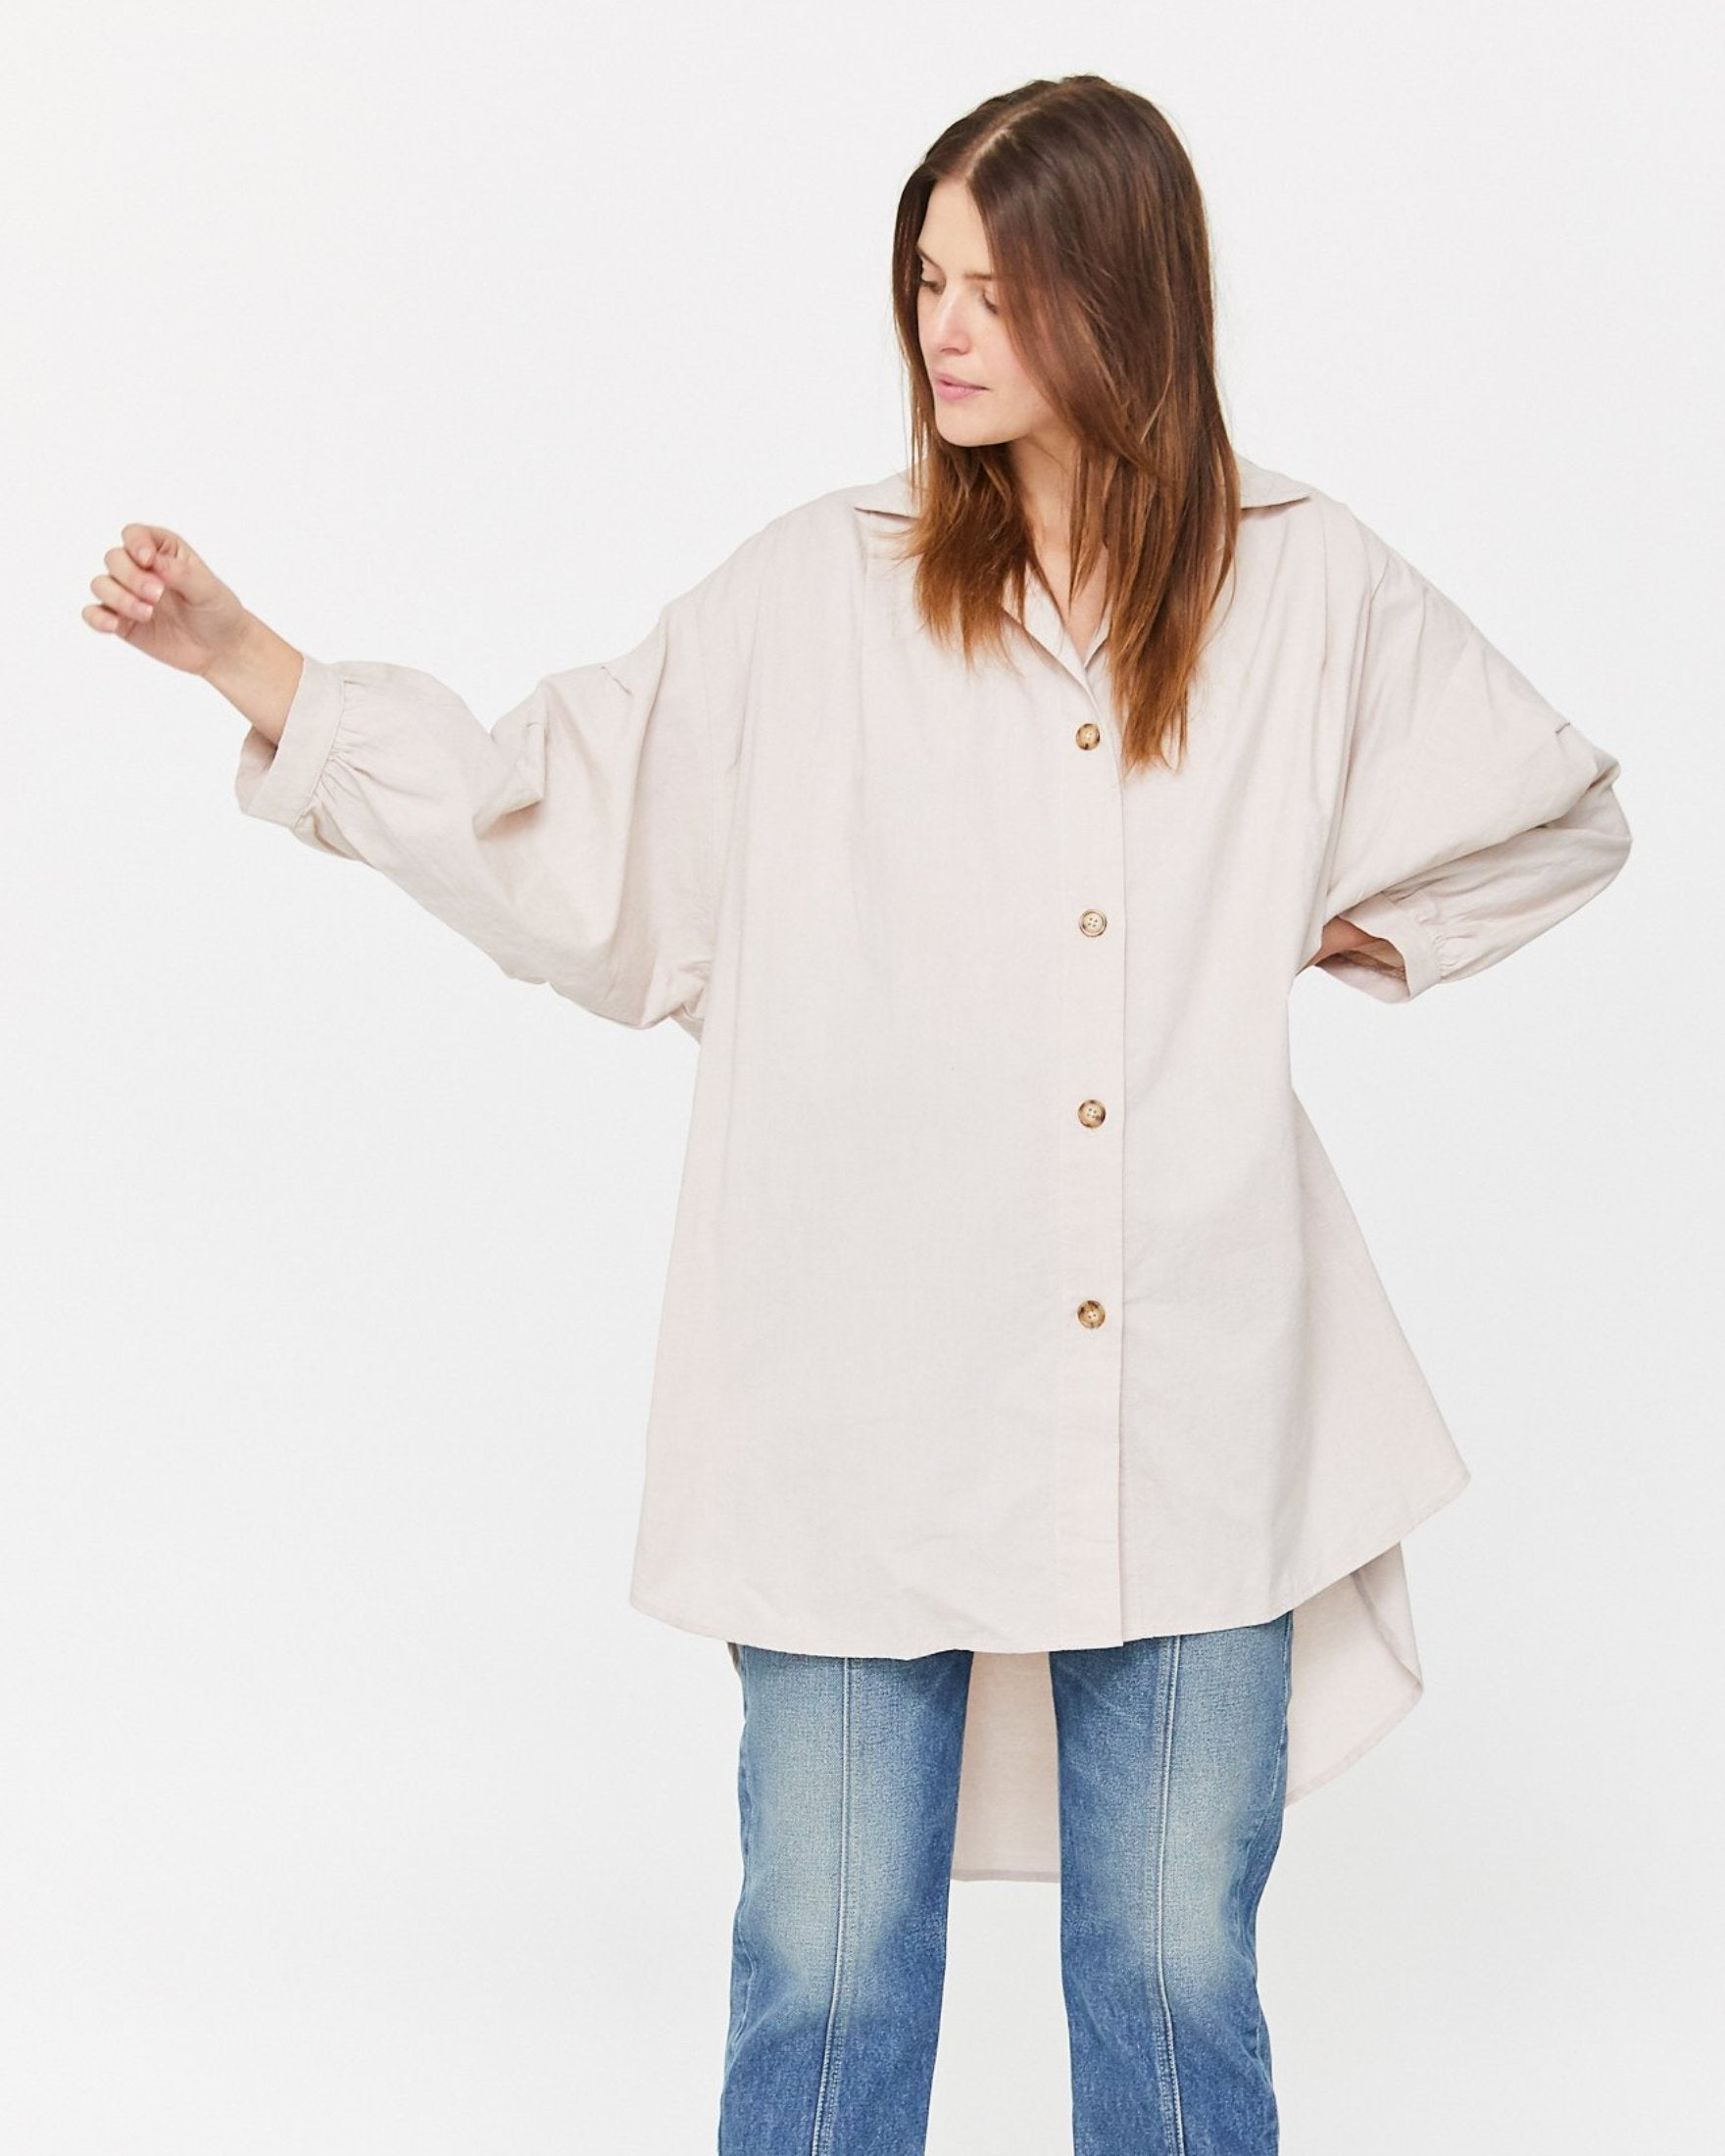 CHELLE OVERSIZED BUTTON DOWN - PEARL